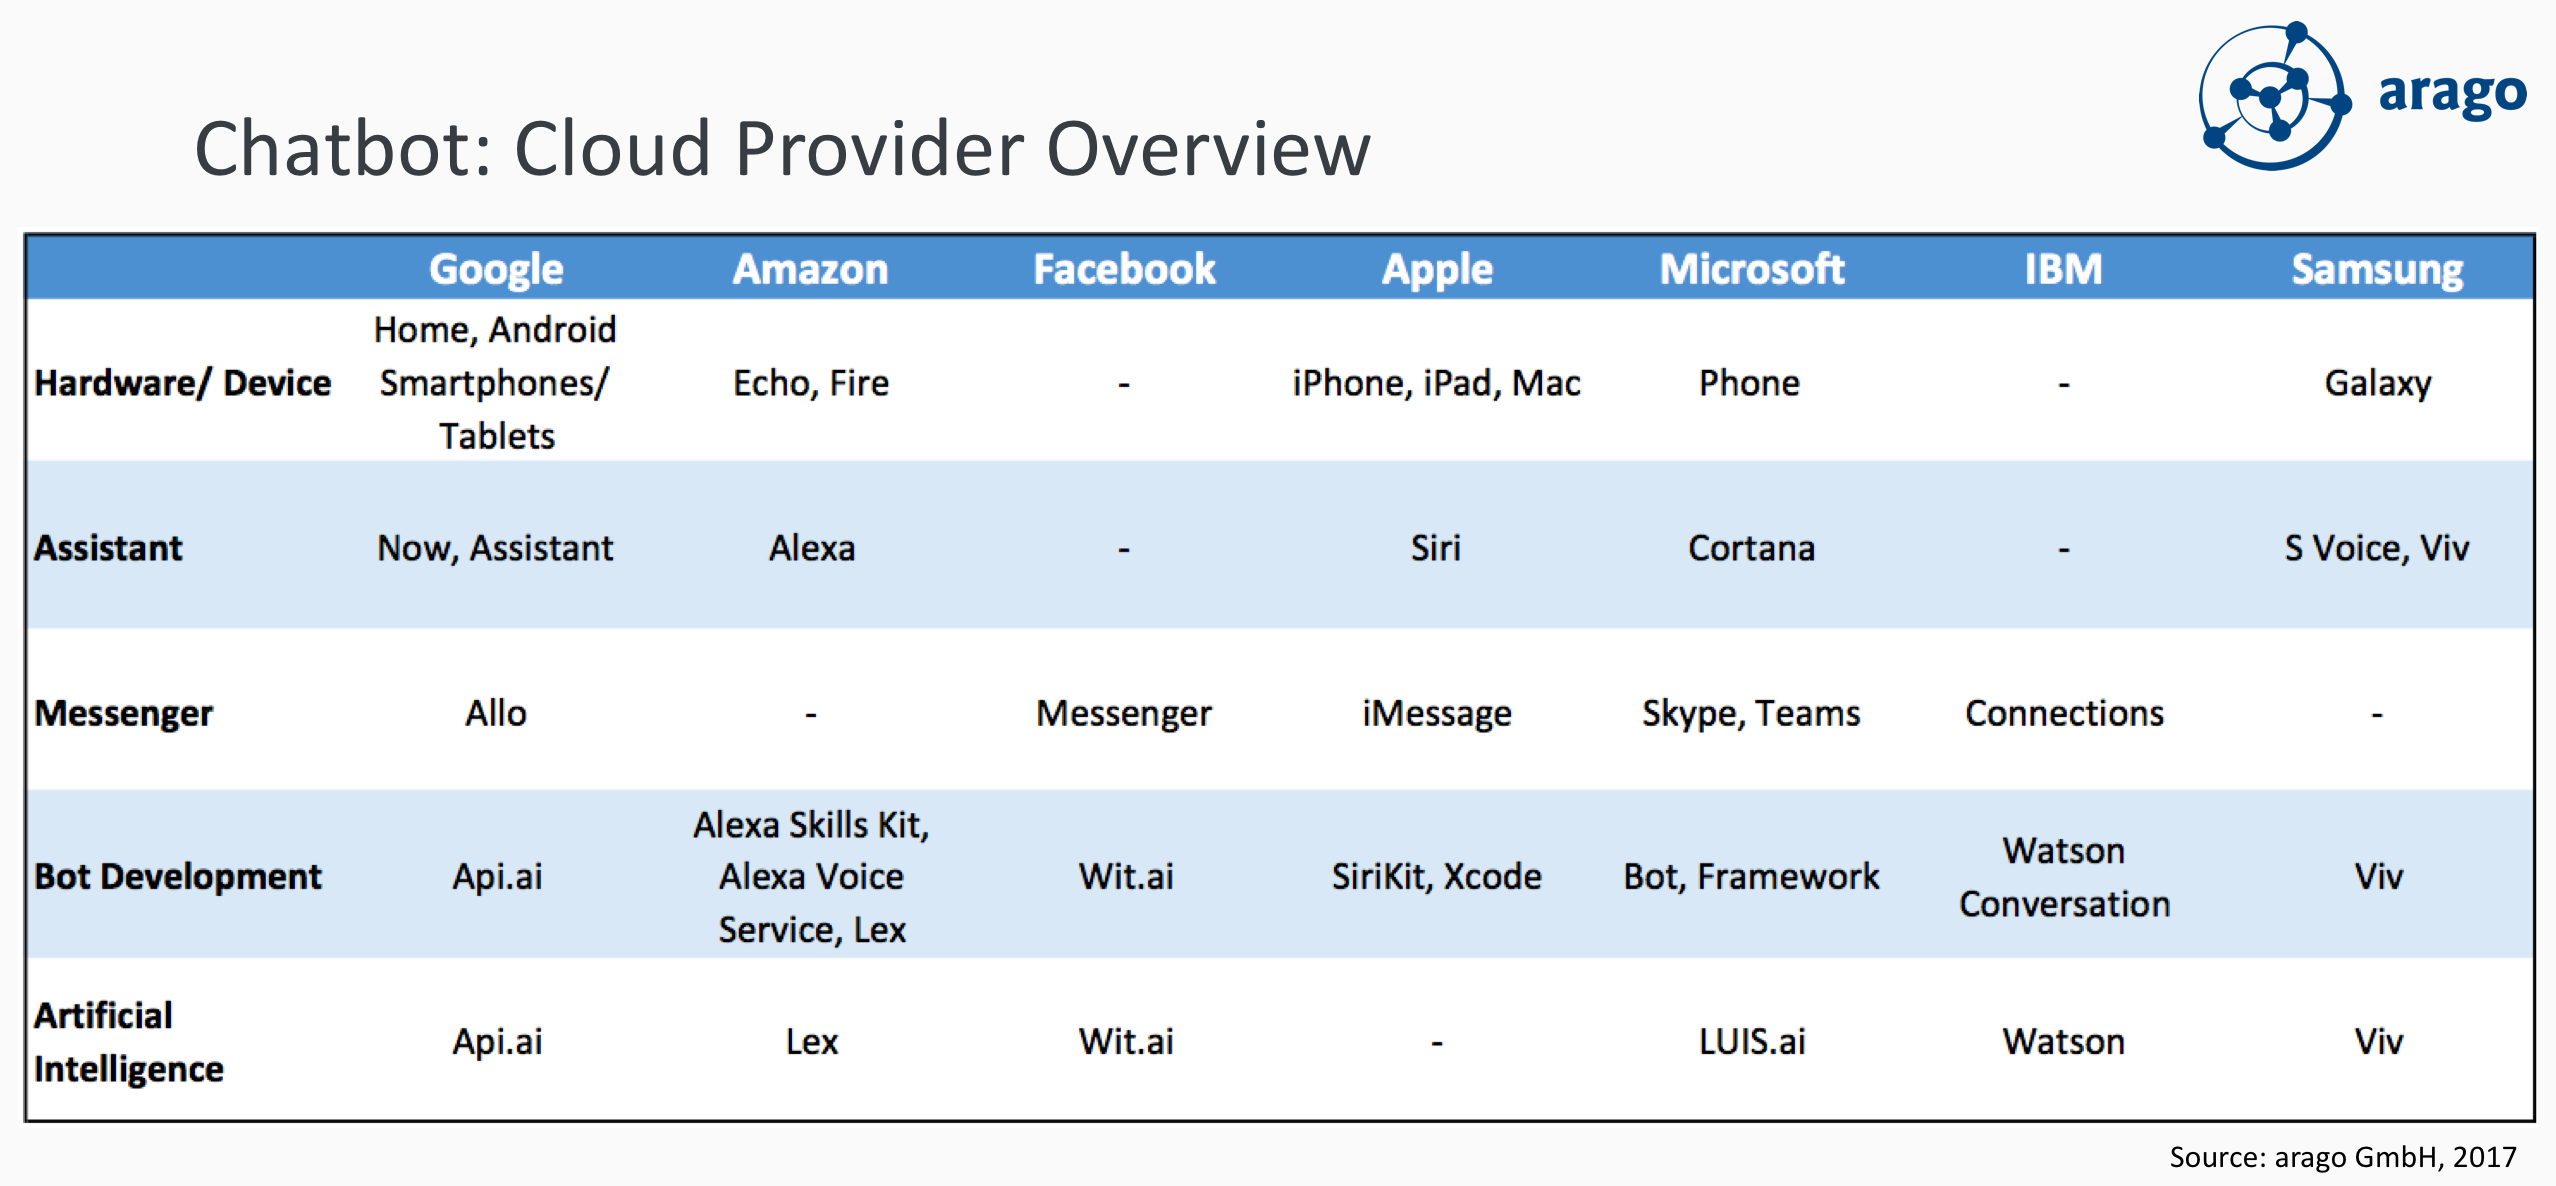 Figure: Chatbot Cloud Provider Overview